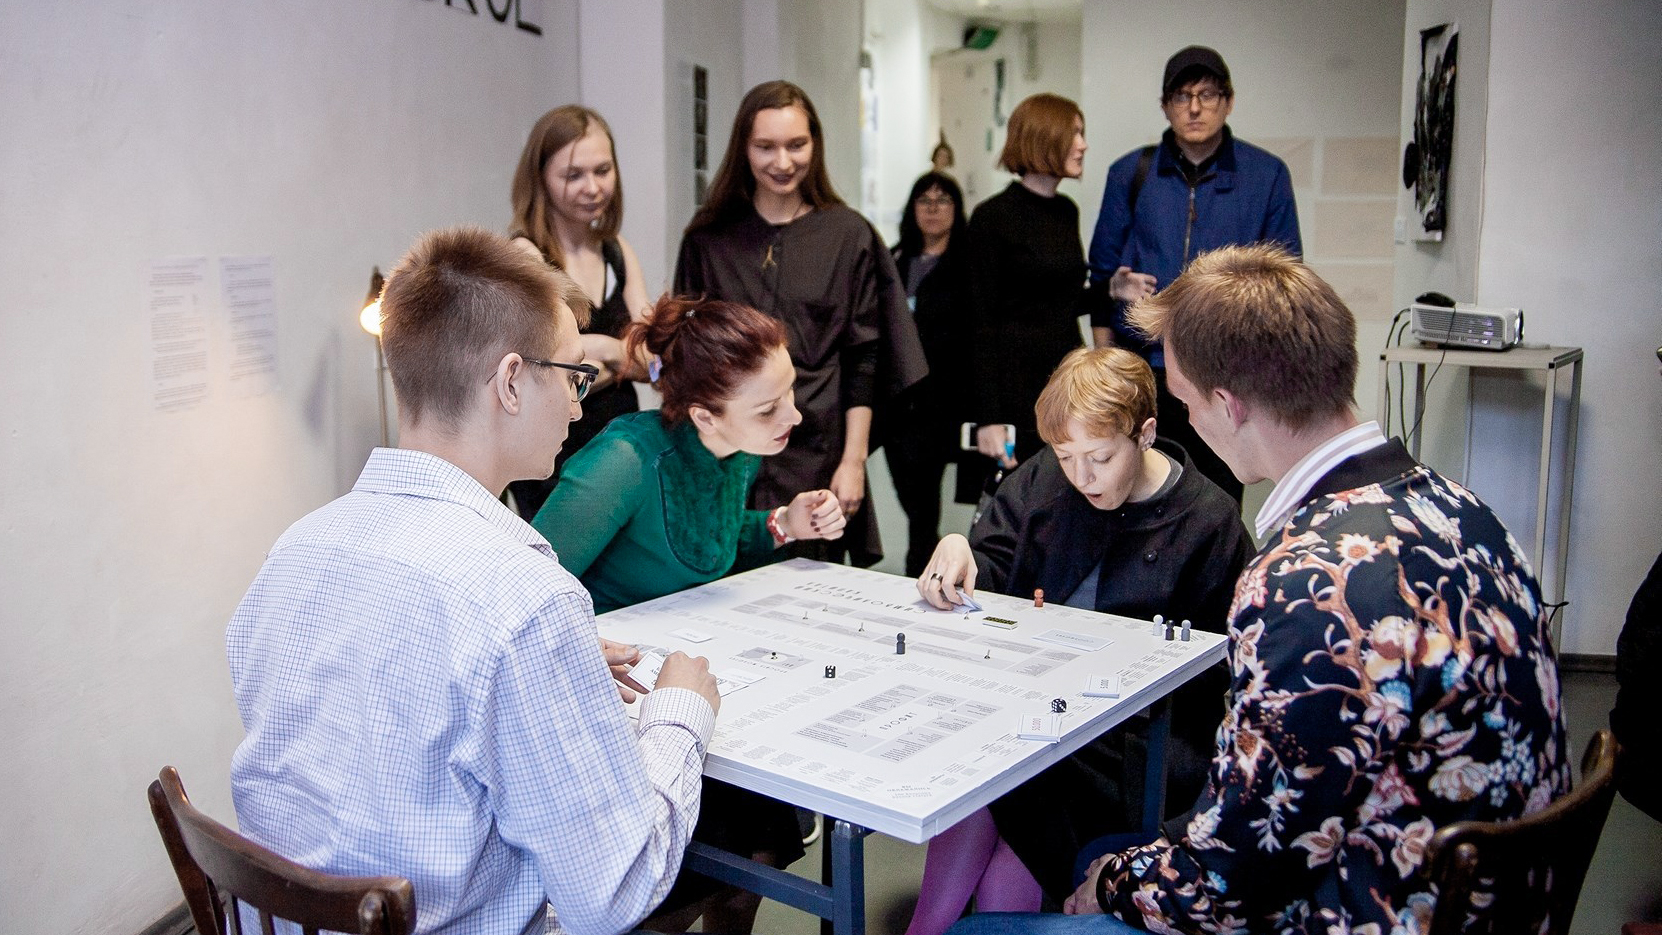 Symbolic Capital, 2018. This game allowed the participants to take a critical look at the connection between an artist and a foundation